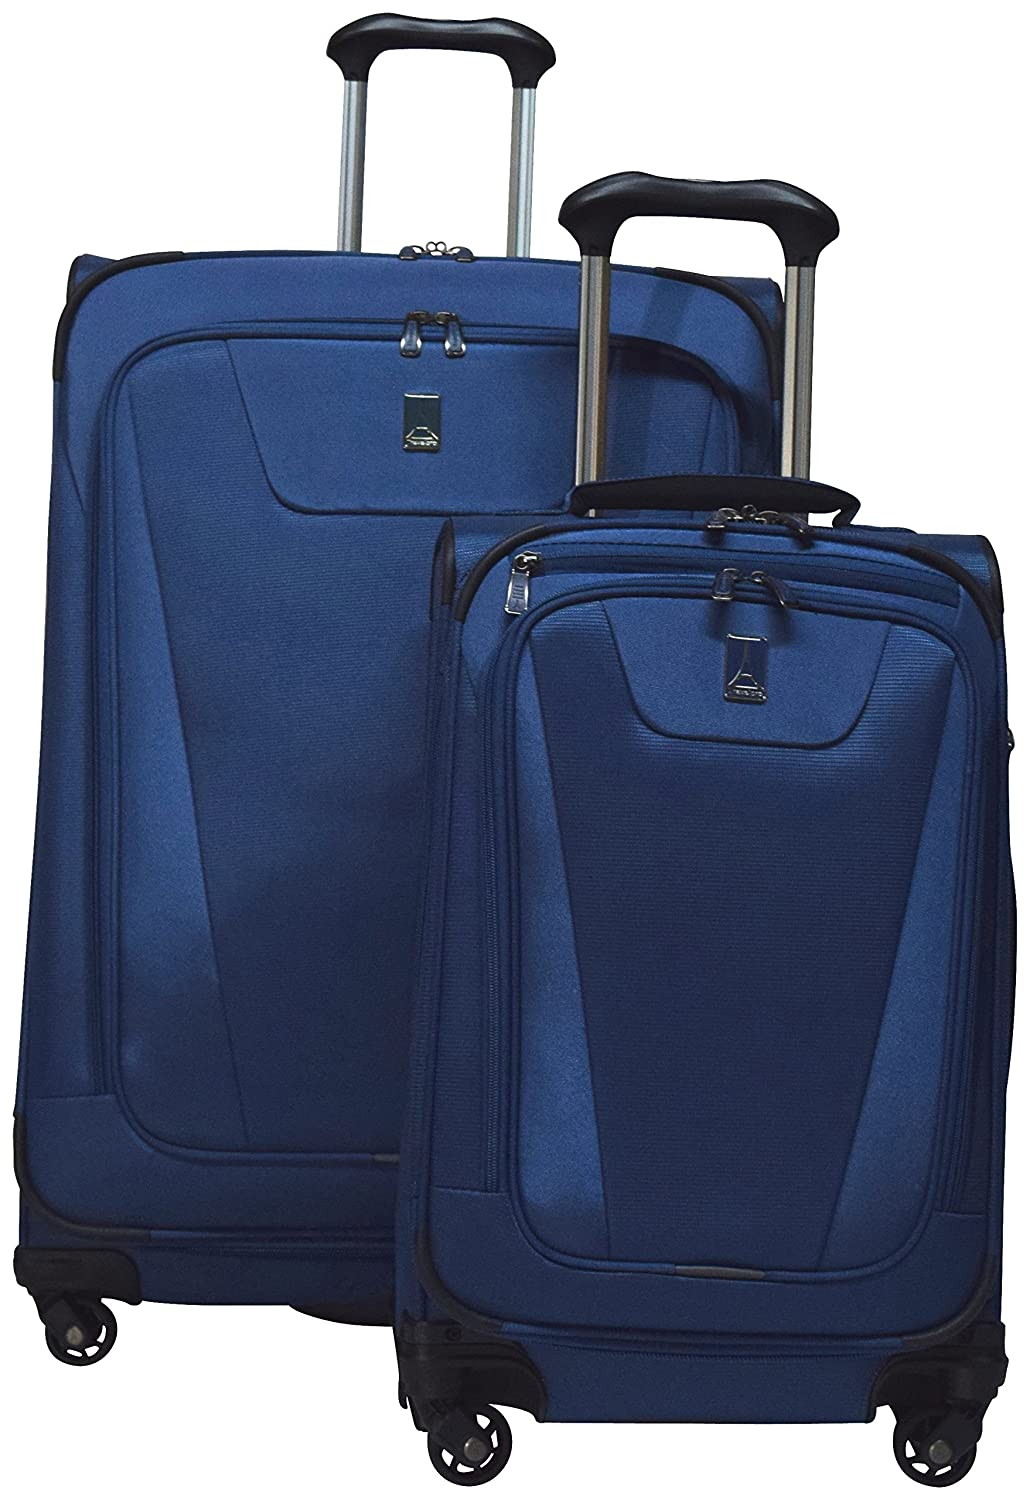 Travelpro Maxlite 4 2 Piece set Blue, One Size Expandable 29 and 21 Spinners